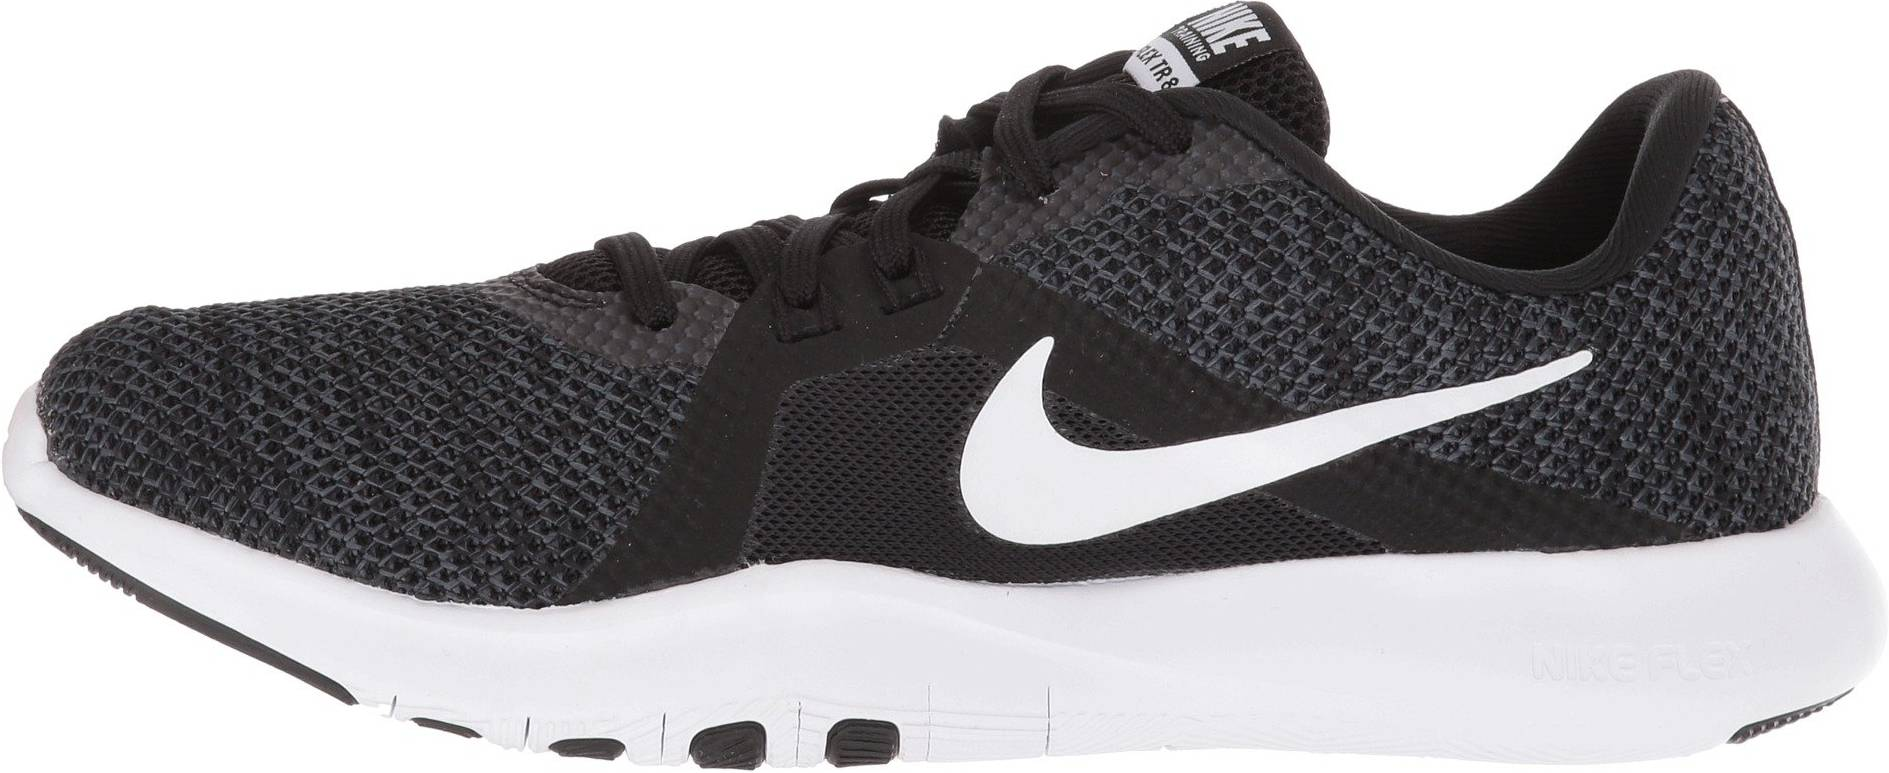 Only £45 + Review of Nike Flex TR 8